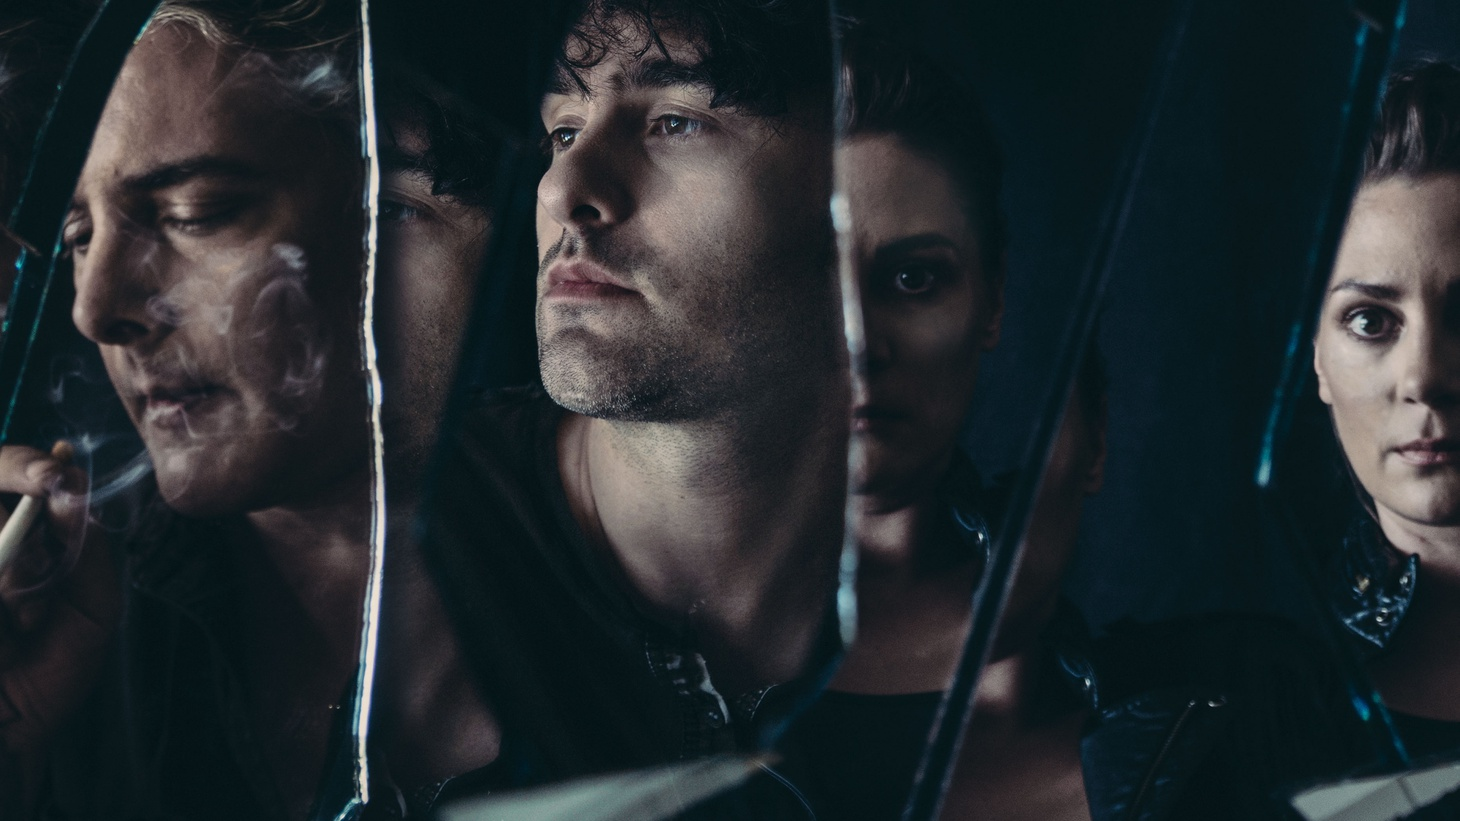 Cali rockers Black Rebel Motorcycle Club released their first album in five years earlier this year. Wrong Creatures veers from garage rock to moaning guitars and atmospheric slow burners, all with a dark edge.